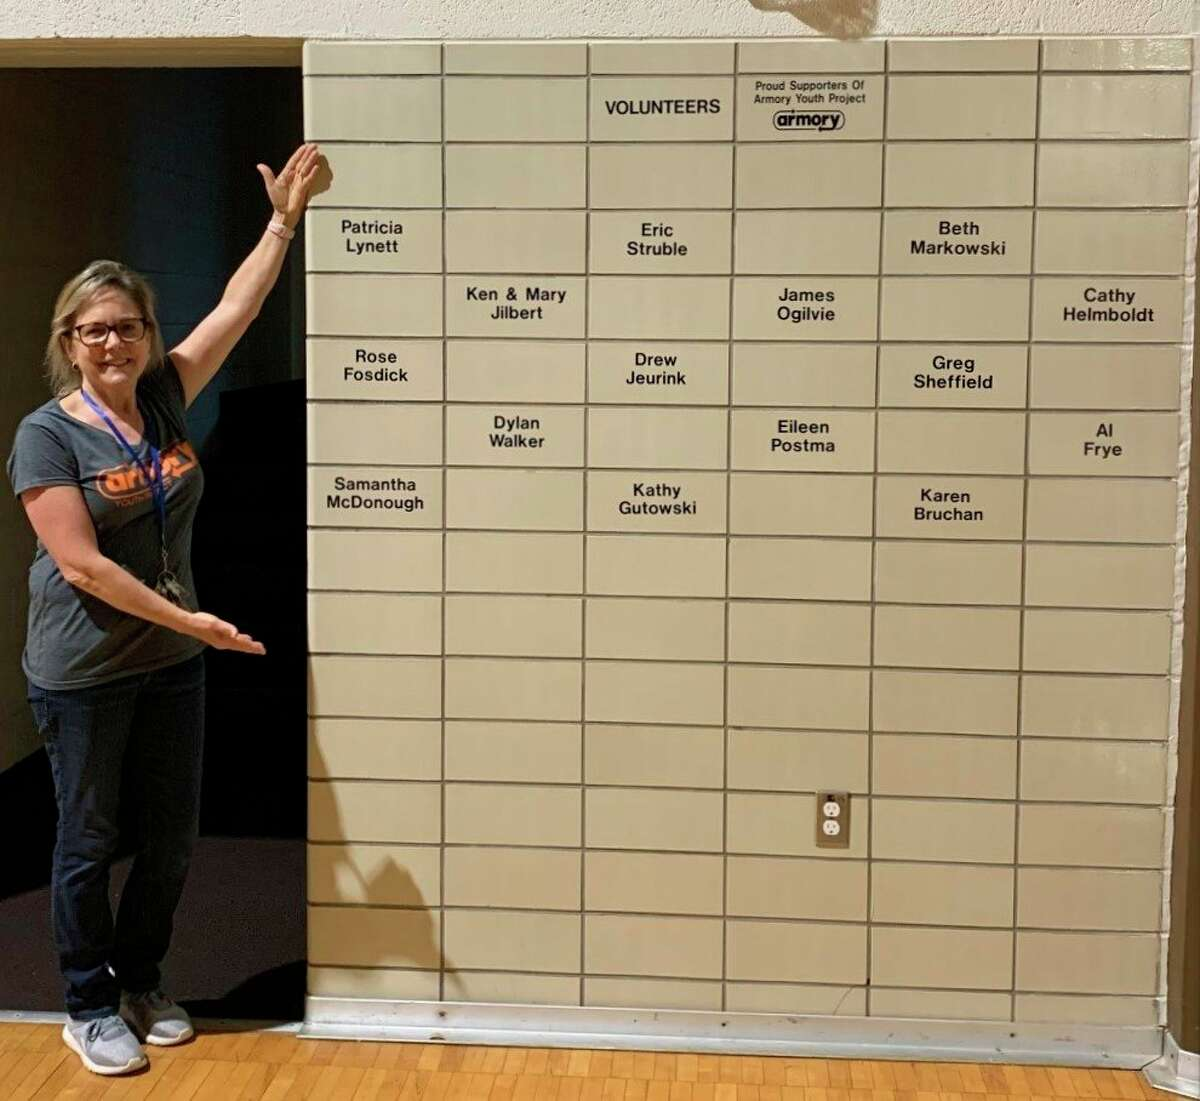 Amy Wojciechowski, Armory Youth Project executive director, shows off the Wall of Service which features the names of volunteers who have provided over 150 hours of service in the past year. (Courtesy photo)